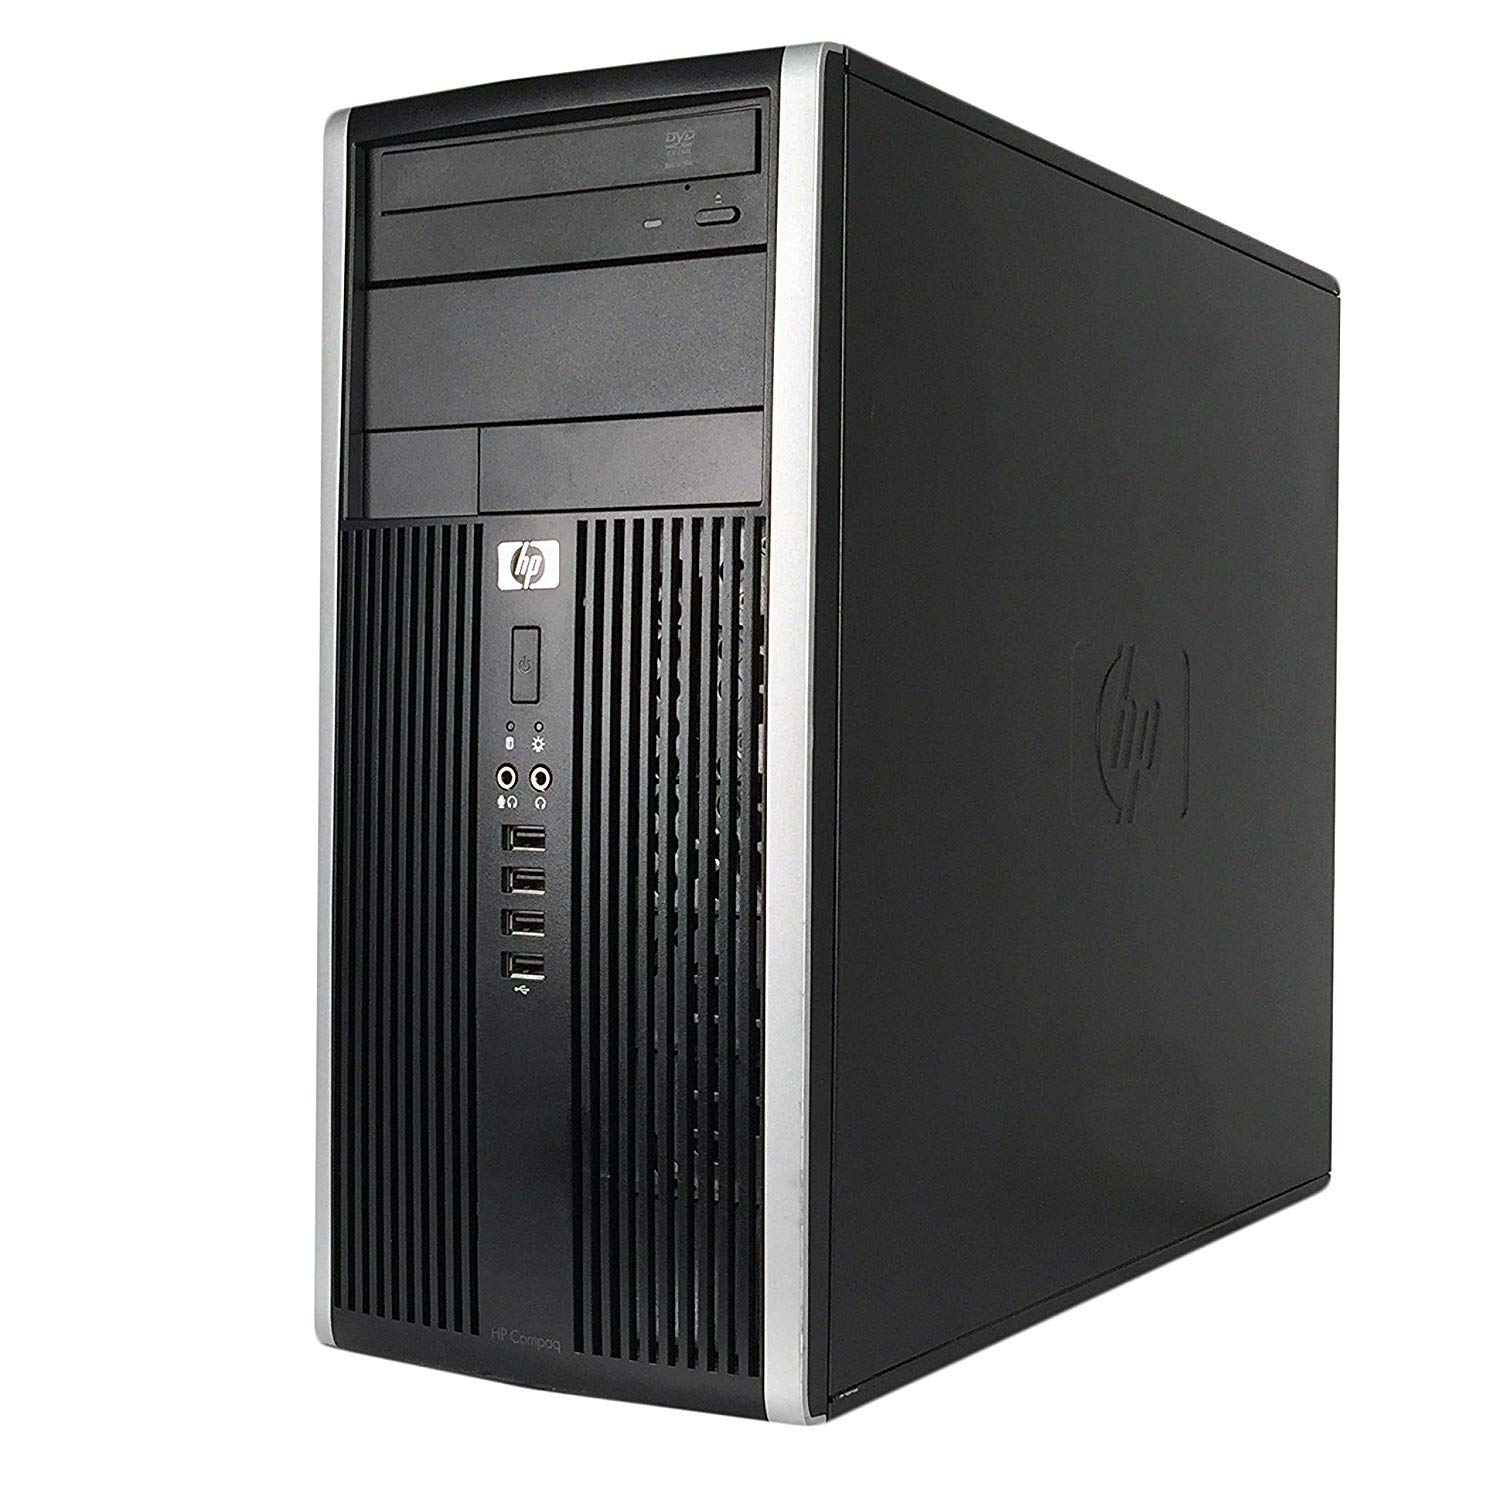 Hp Compaq Elite 8300 Sff 500 Gb Sata Desktop Computer Windows 10 Pro Intel Core I7